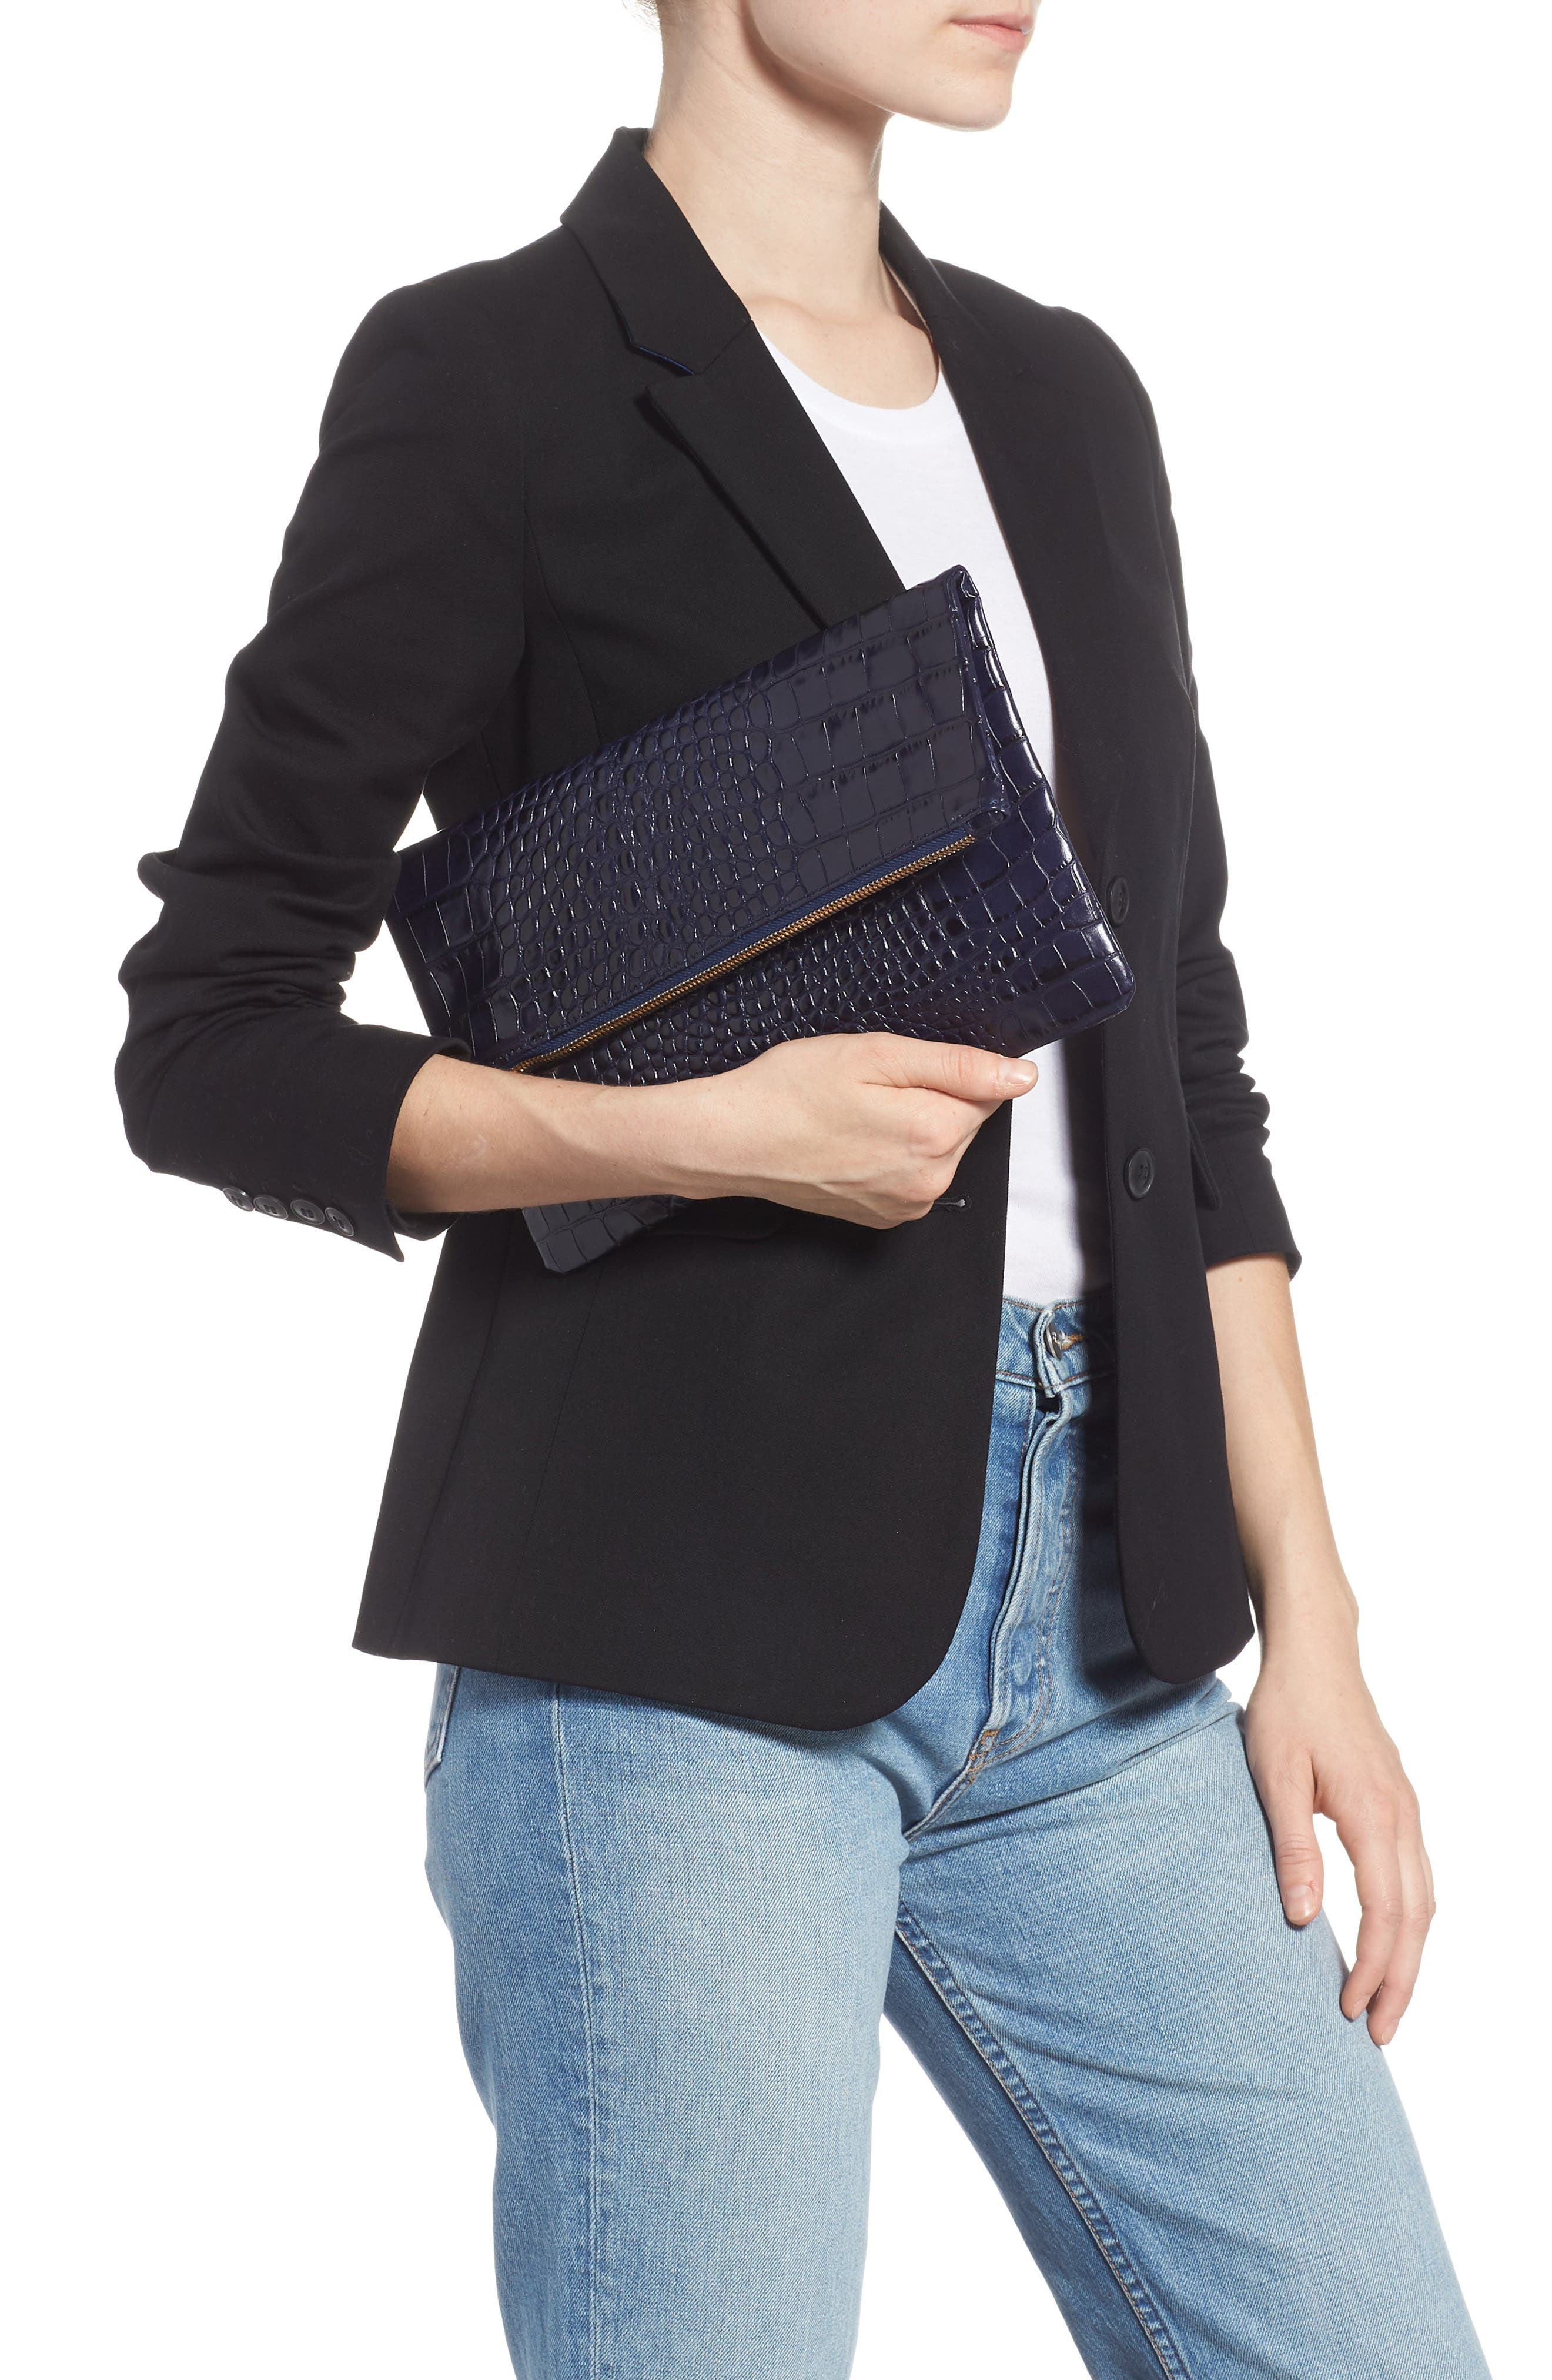 Croc Embossed Leather Foldover Clutch,                             Alternate thumbnail 2, color,                             MIDNIGHT CROCO